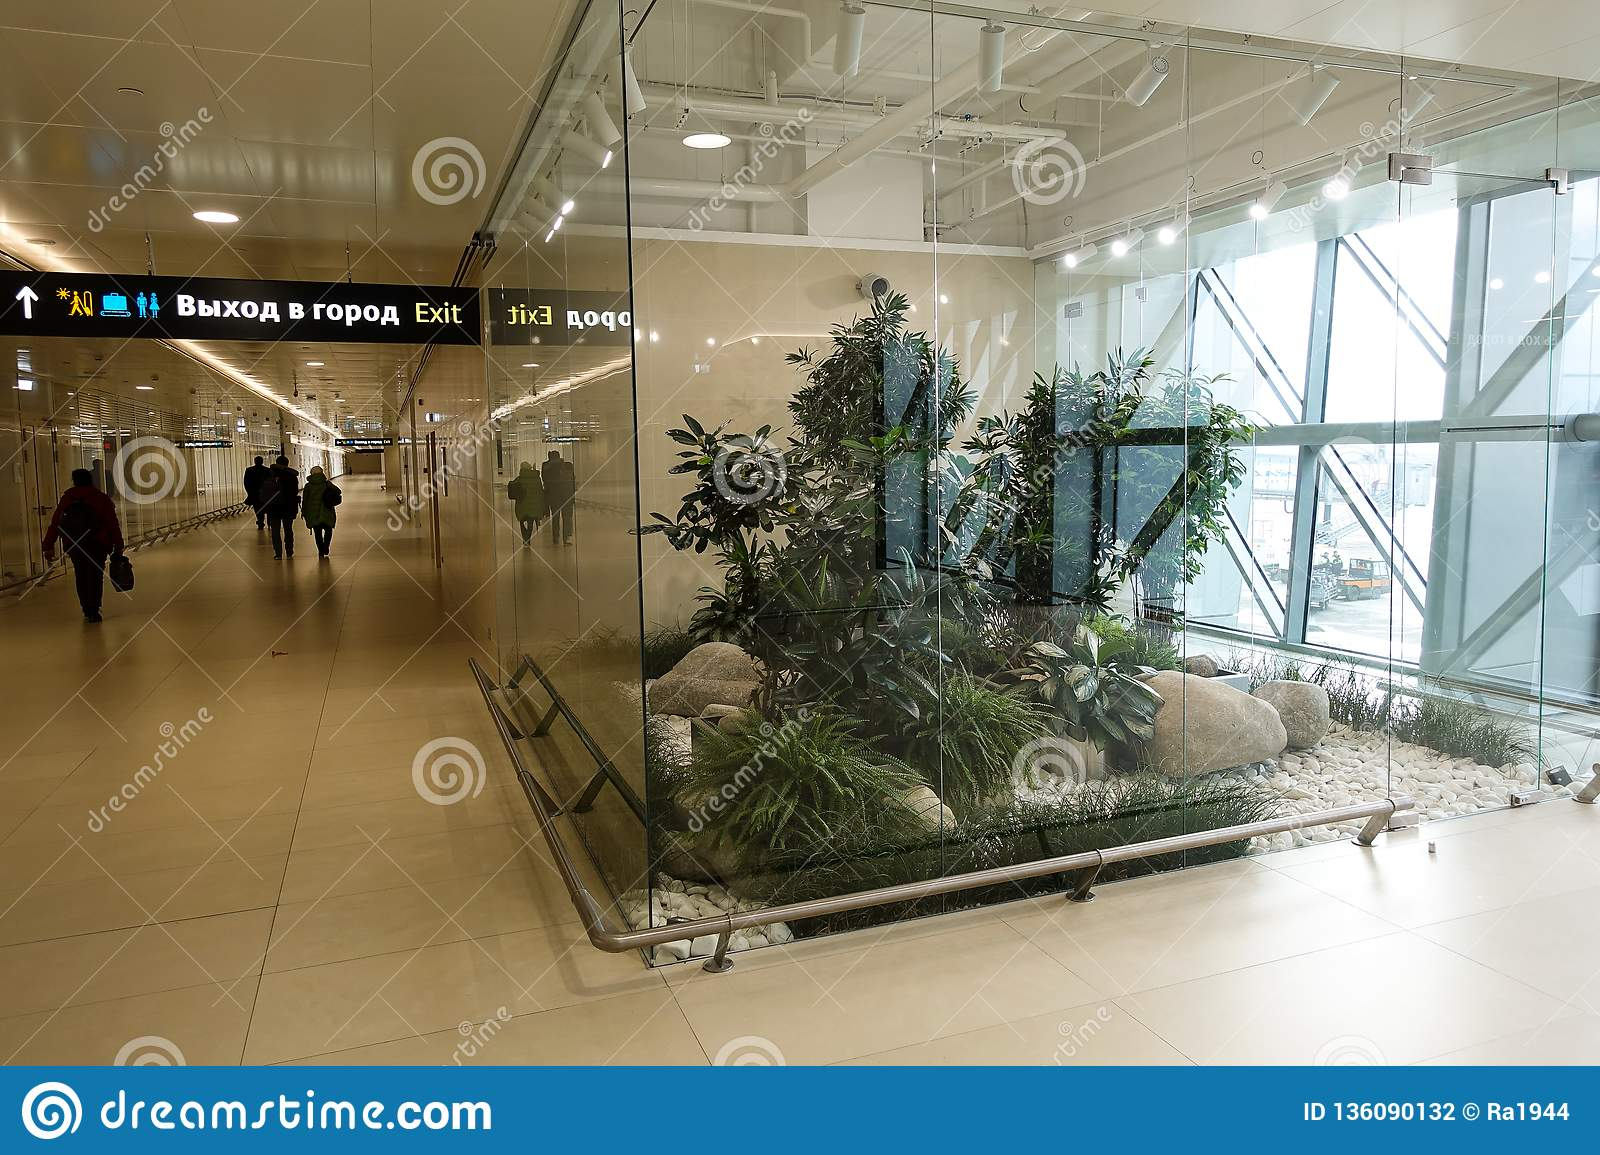 Modern Interior Design With Indoor Plants Simferopol Airport 2019 January 01 Editorial Photography Image Of Glass Decorative 136090132